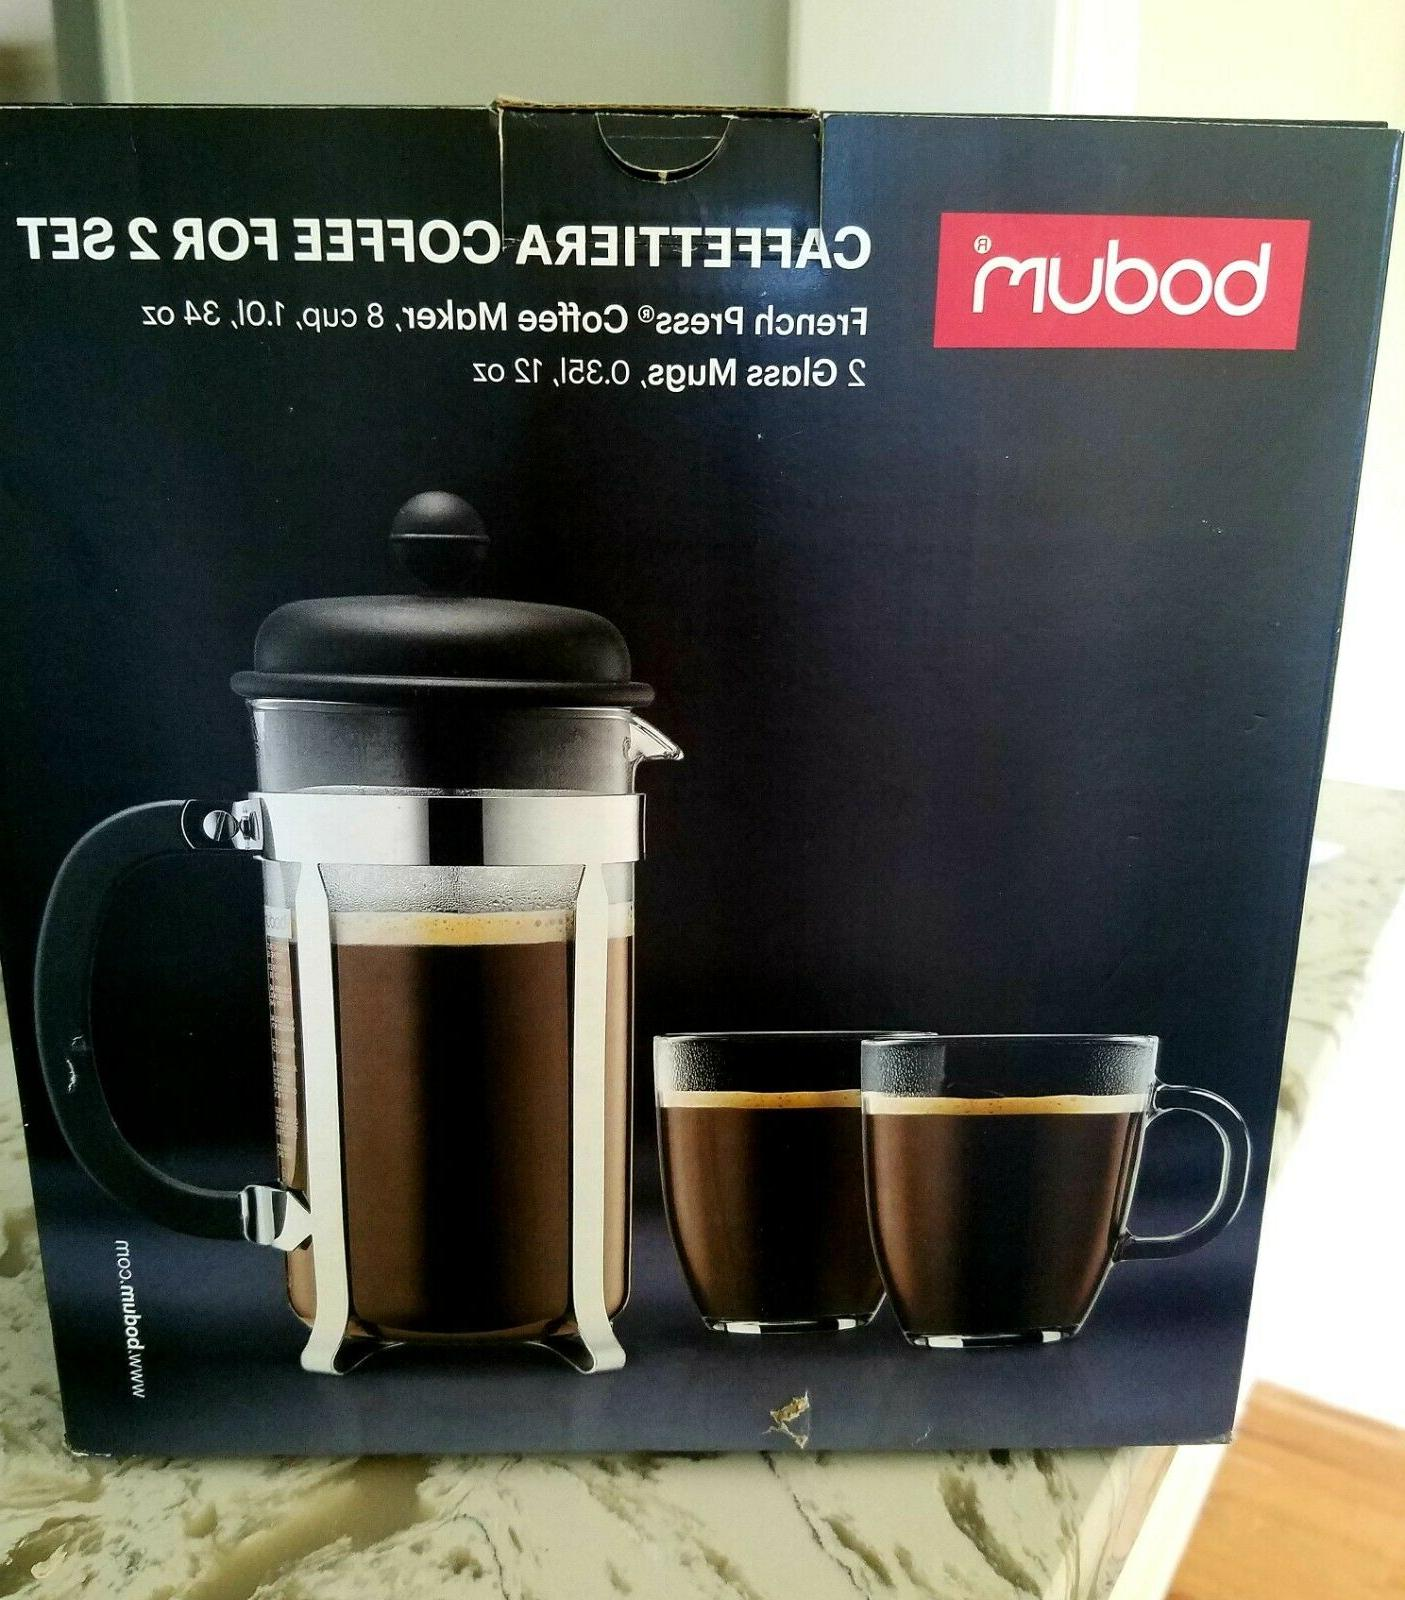 8 cup caffettiera coffee set for 2